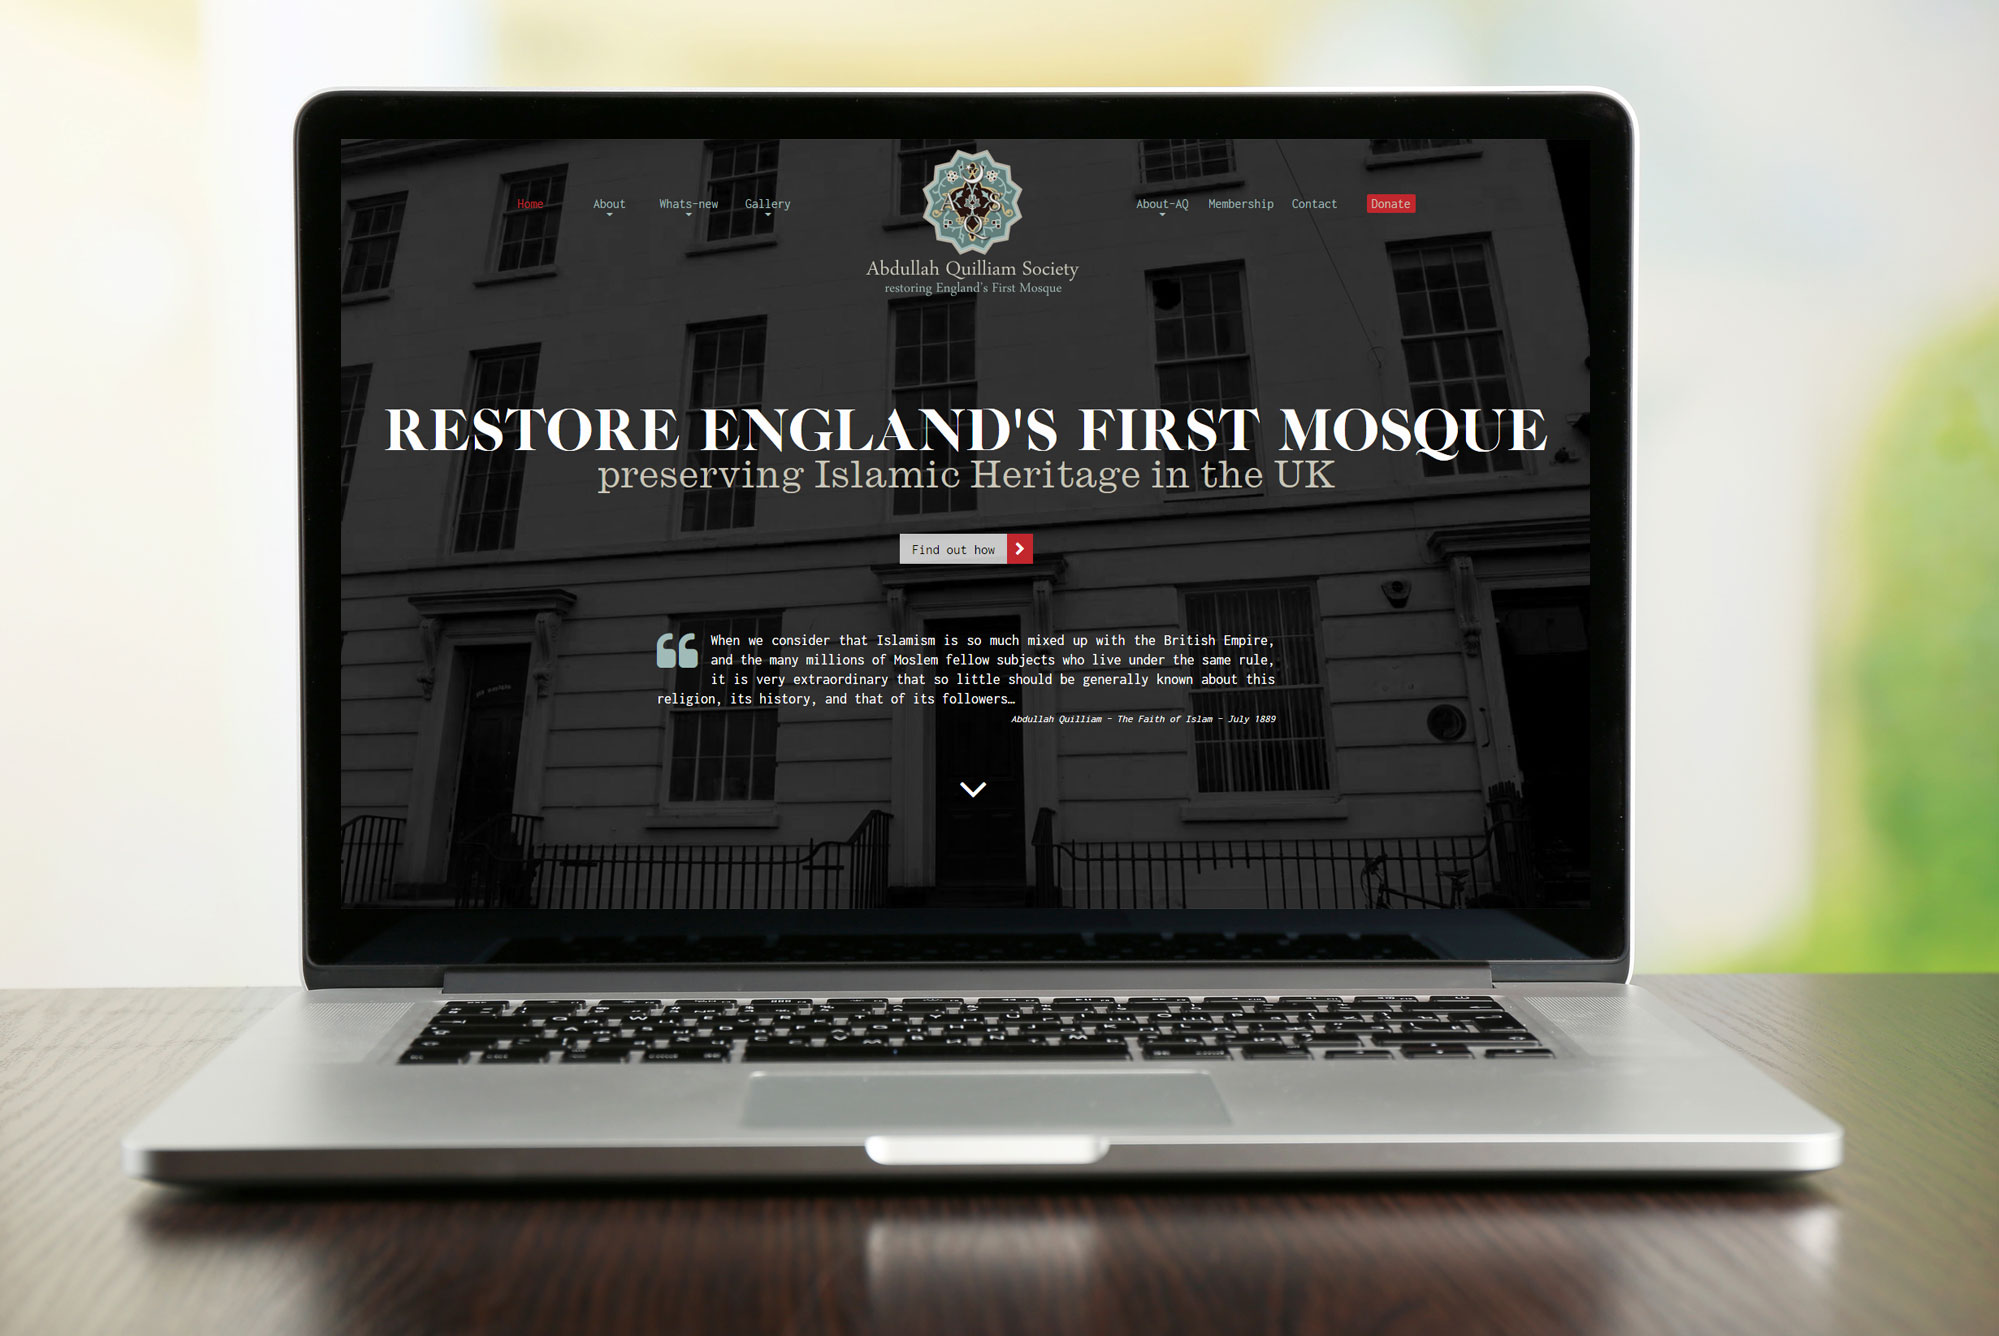 Screeshot of England's First Mosque website